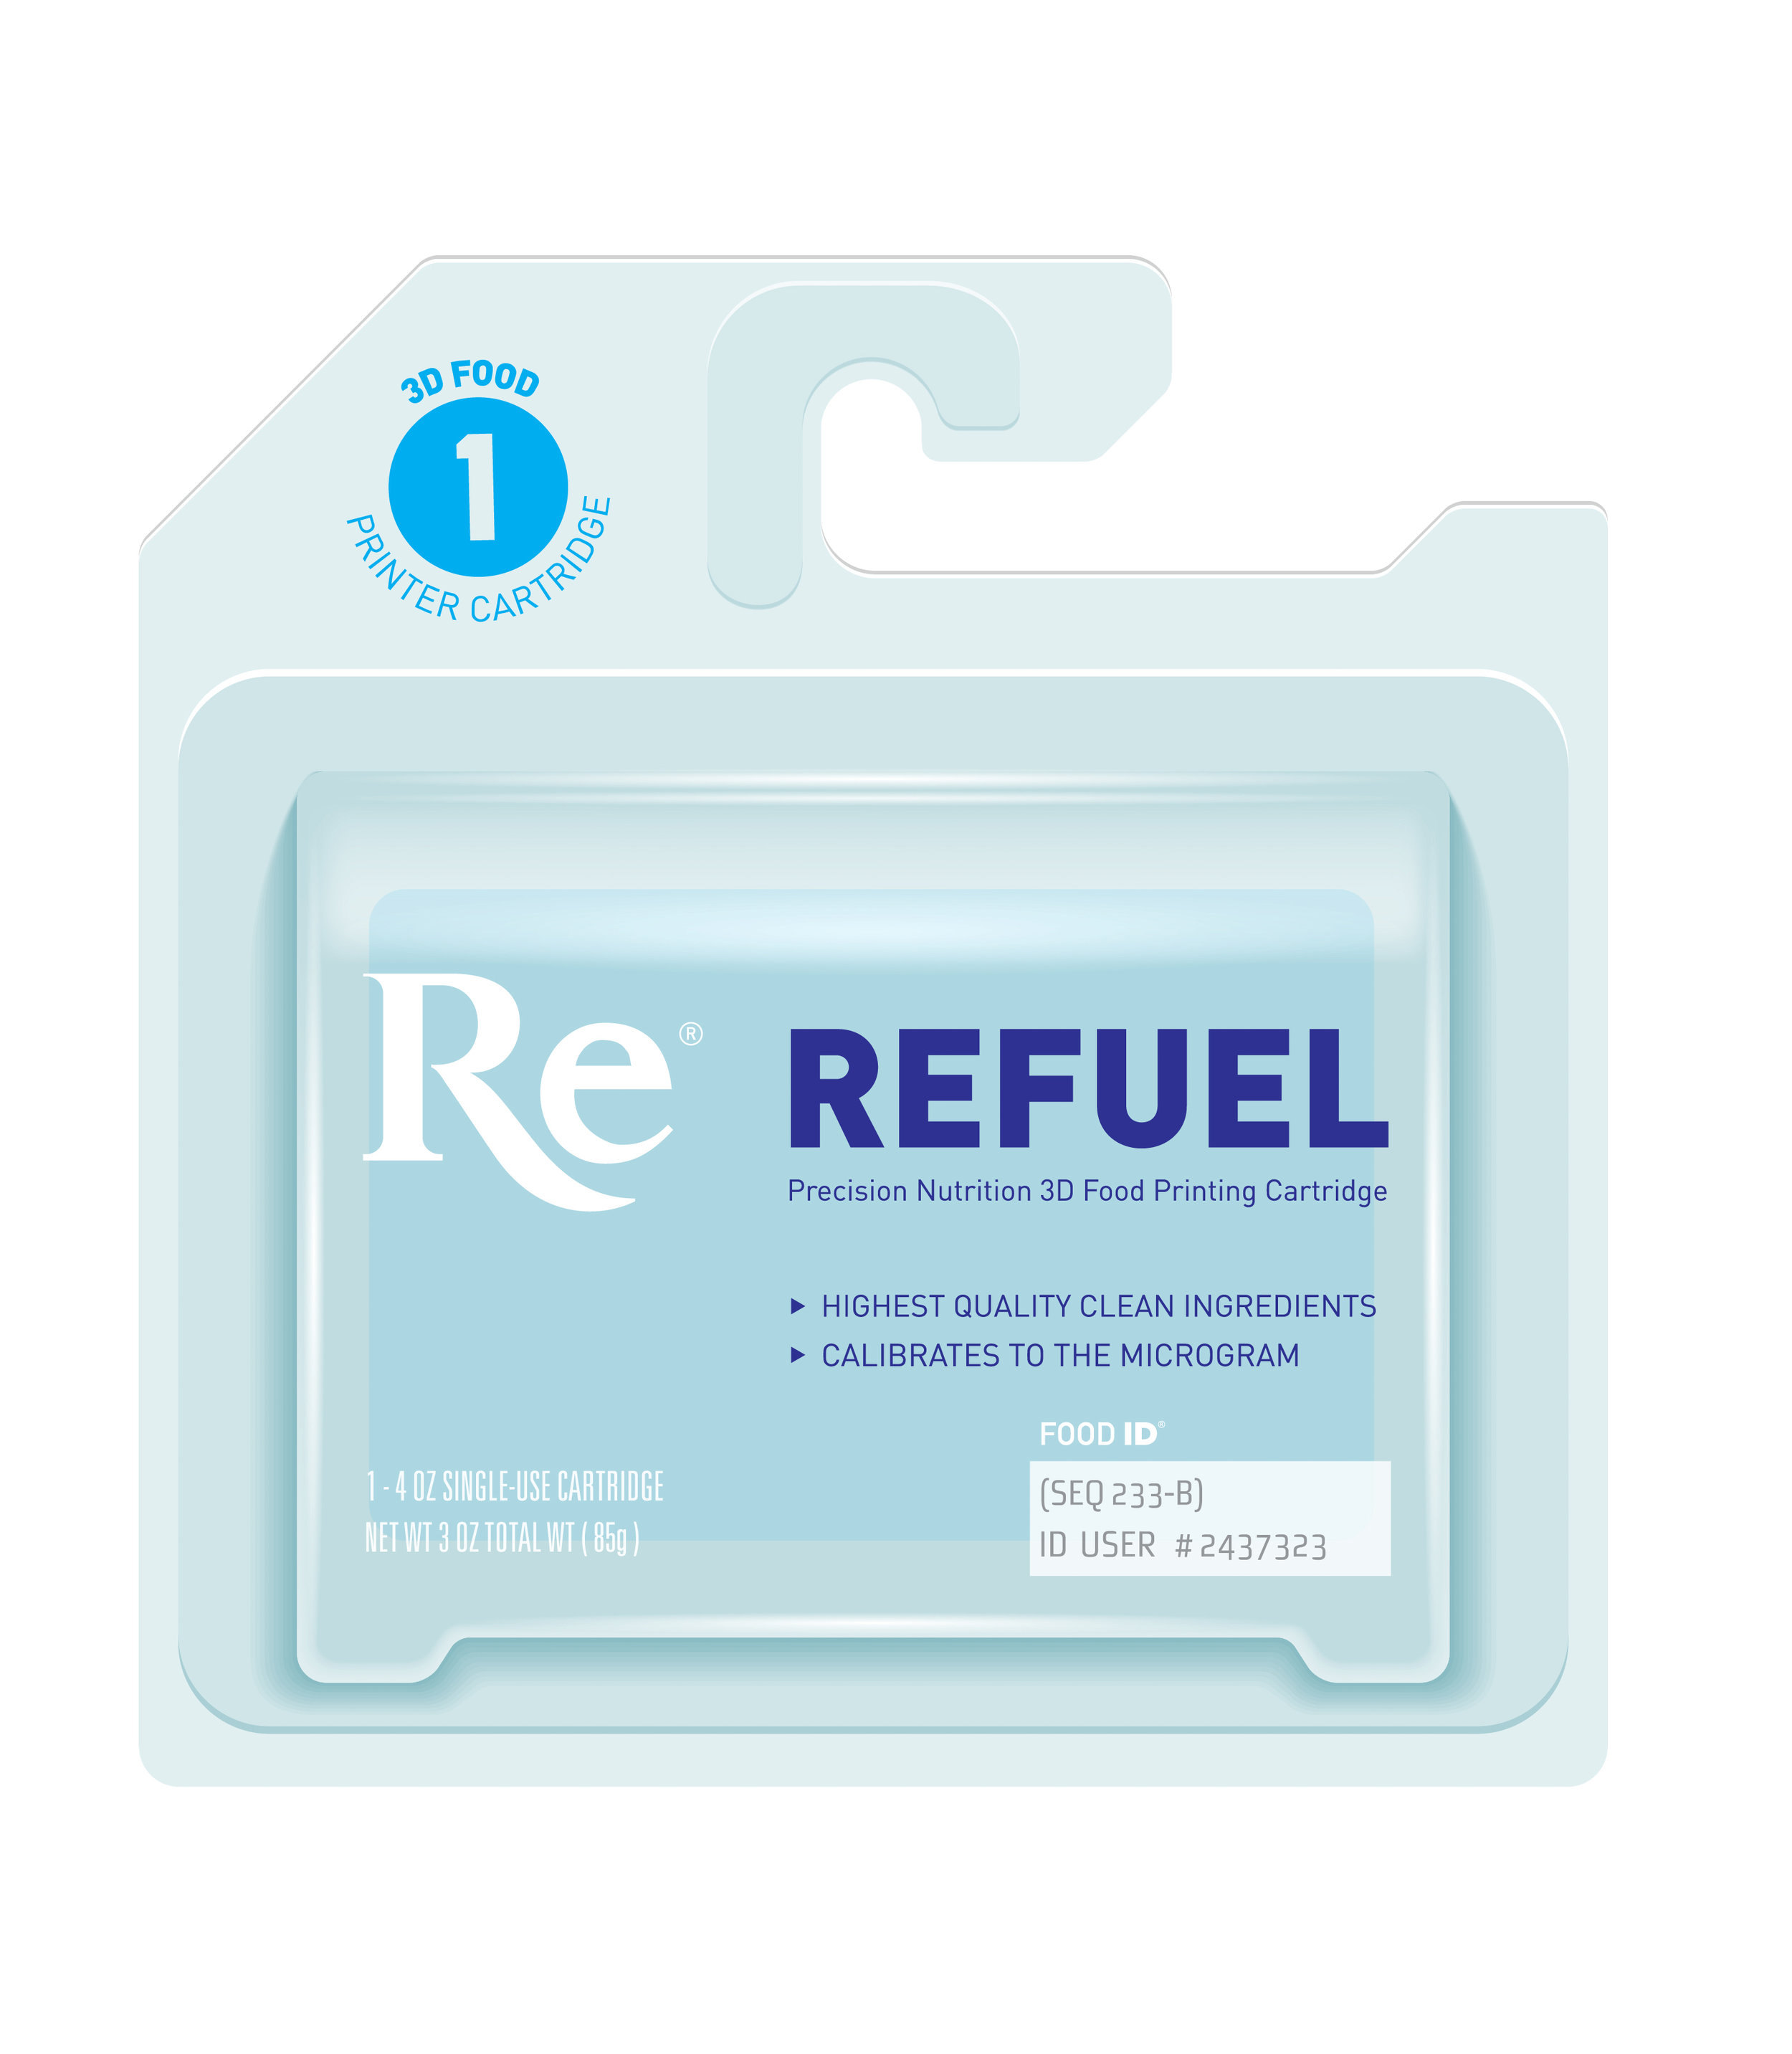 Refuel    When it comes to printing food at home, you're in control, and with Refuel, you'll never have to compromise again. Refuel cartridges work in tandem with your 3D printer and Food ID profile to bring you precise consumables that meet your dietary needs.